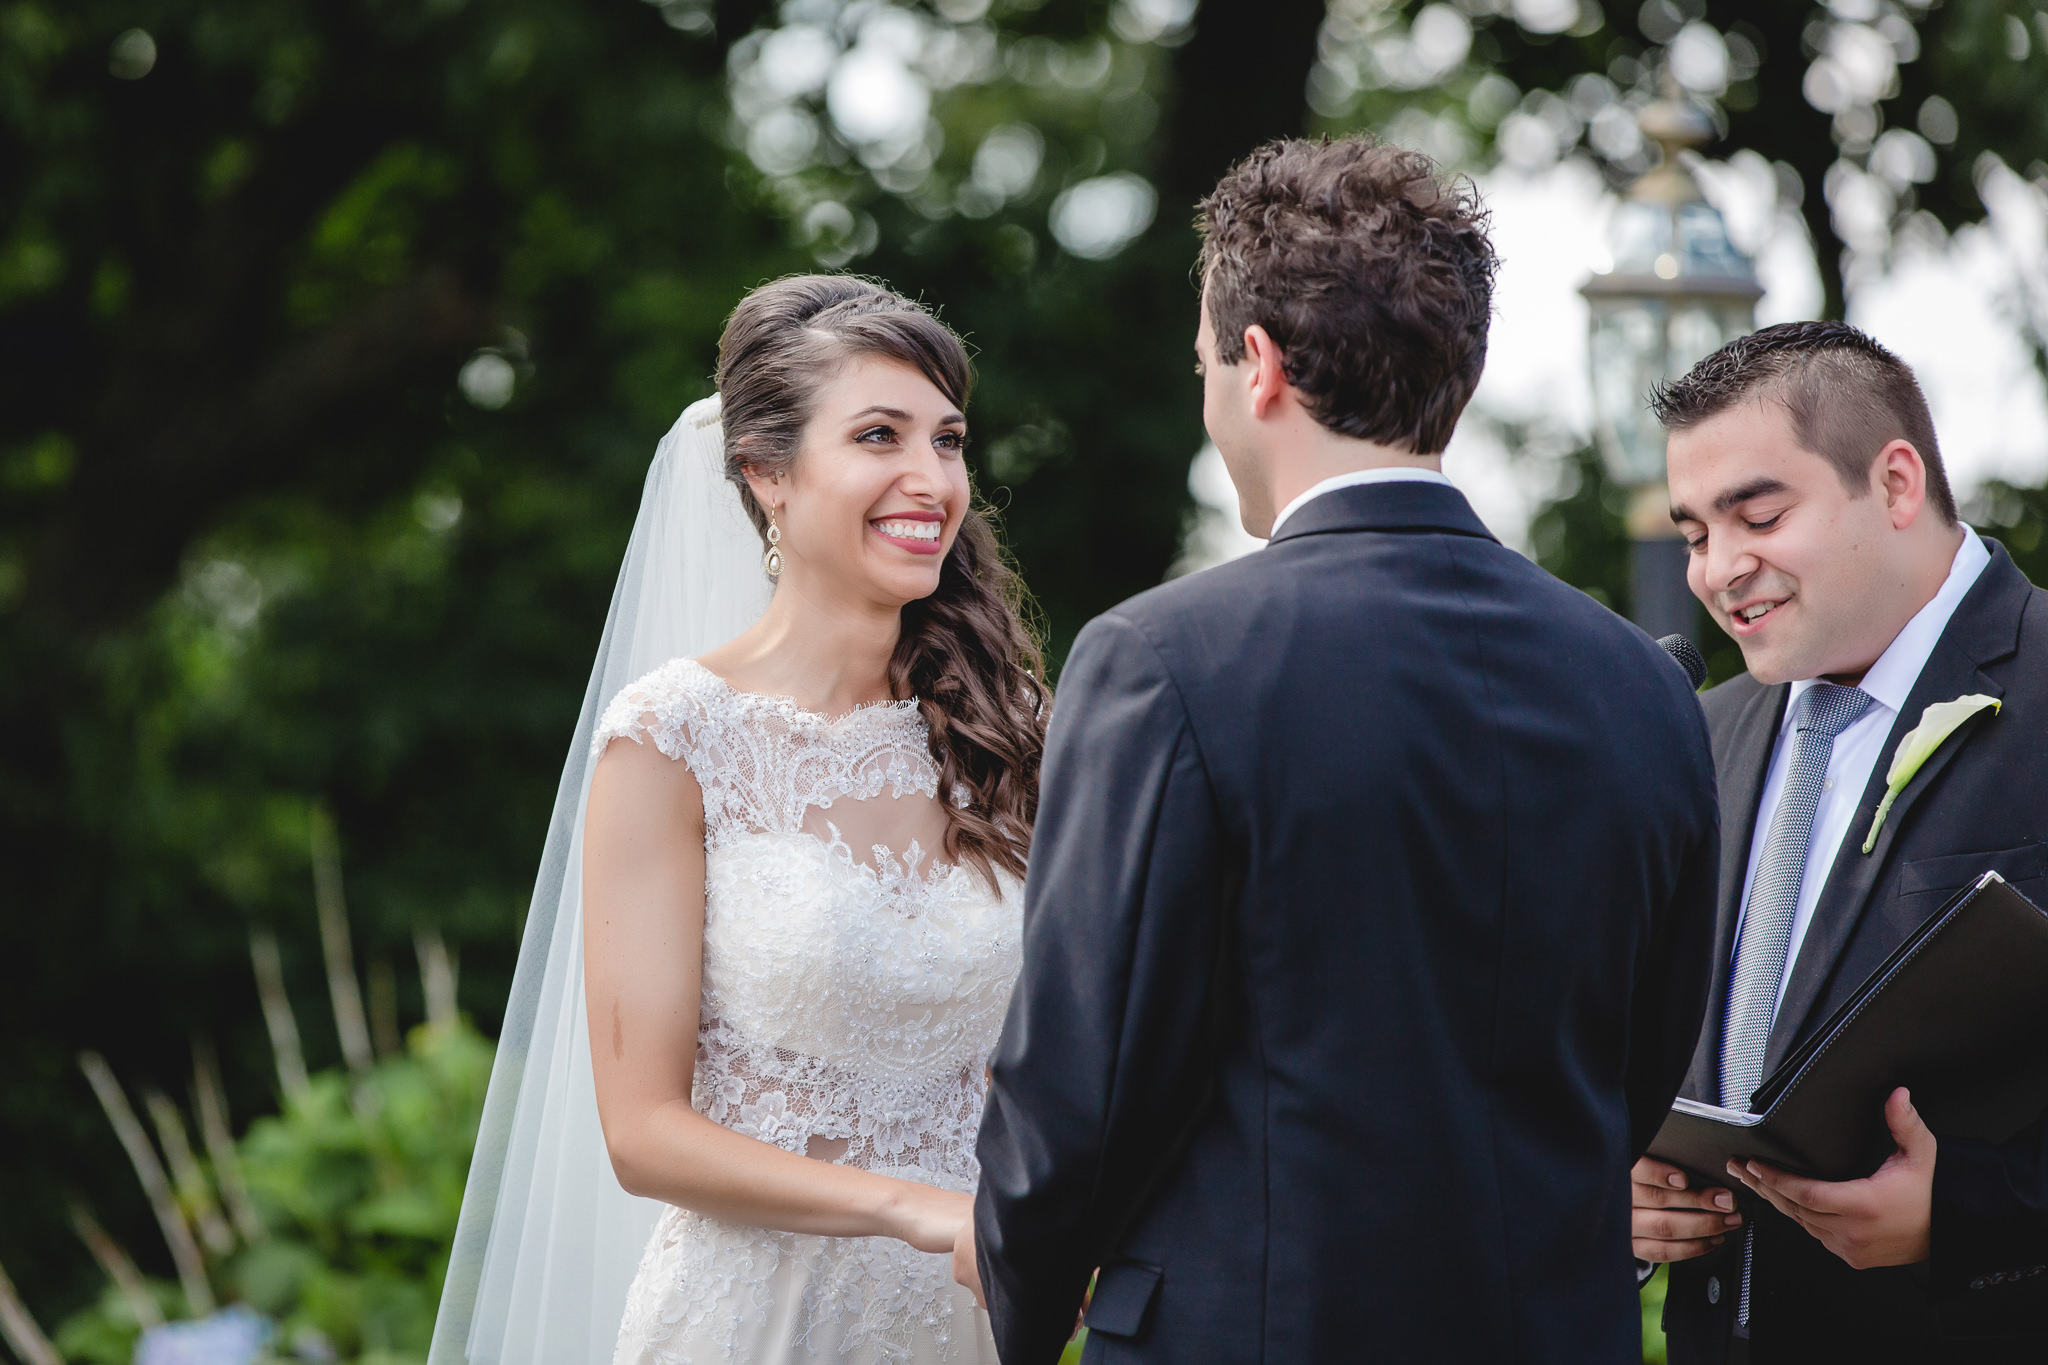 Bride smiles at her groom during their outdoor wedding ceremony